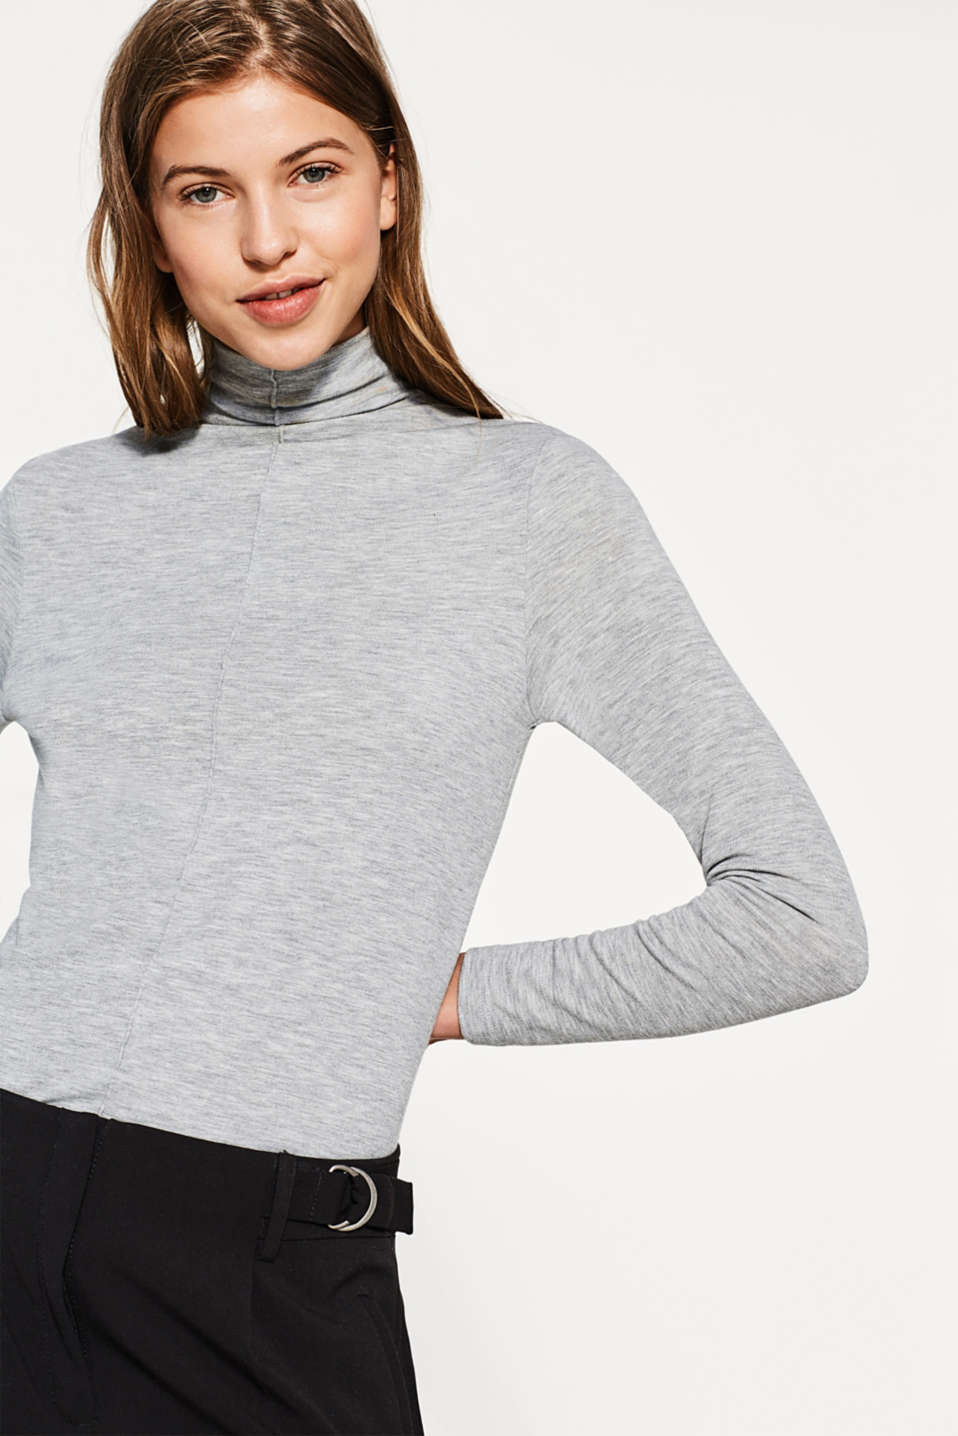 Esprit - Soft stretch long sleeve top, stand-up collar